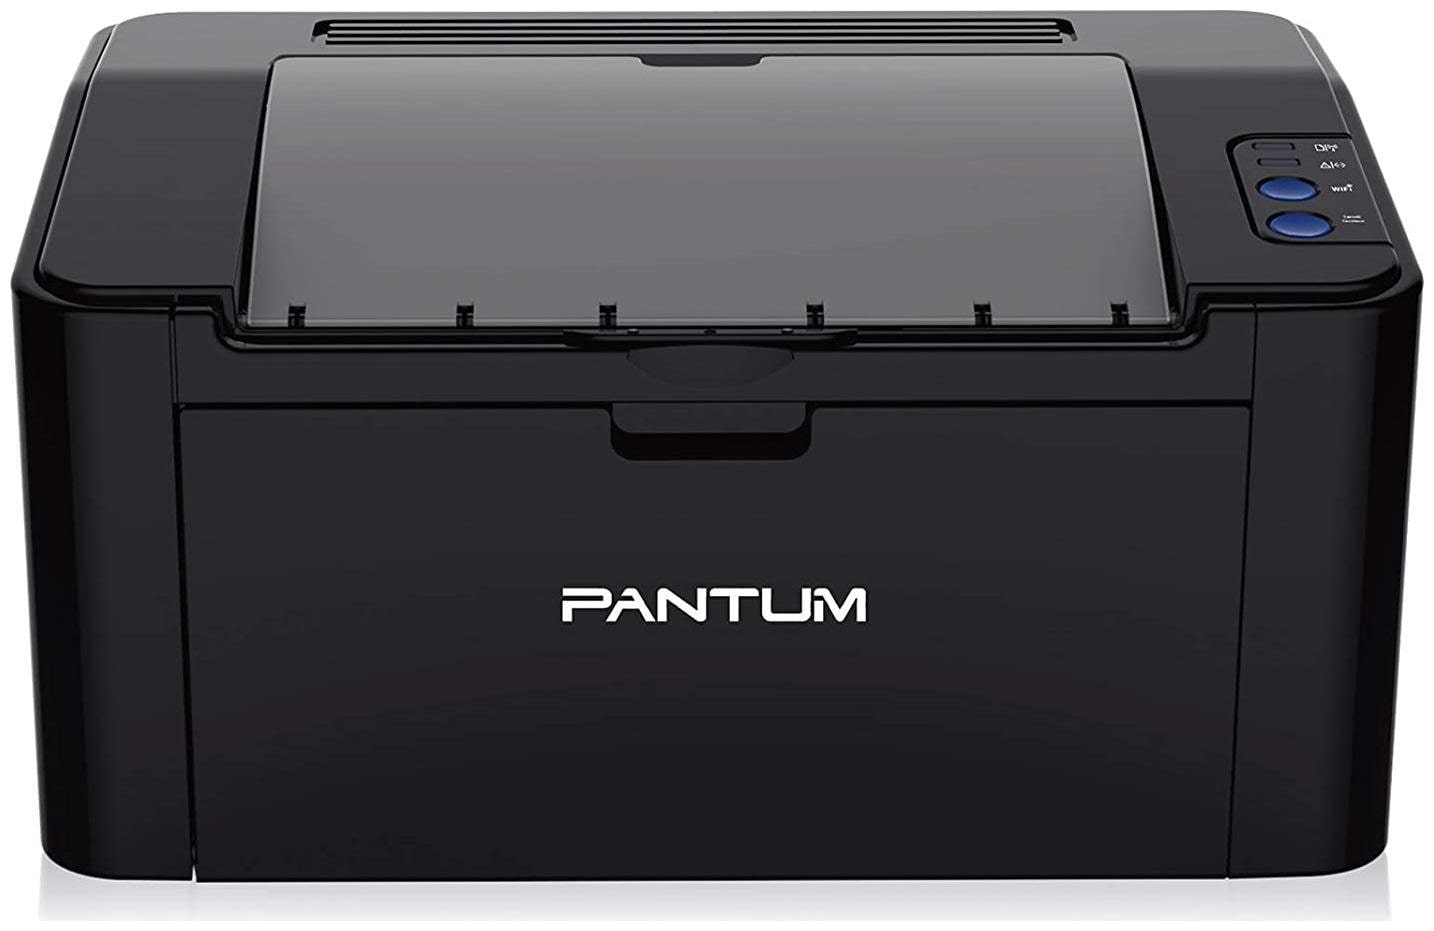 Pantum p2500w Single Function Laser Printer by Sigma Solutions